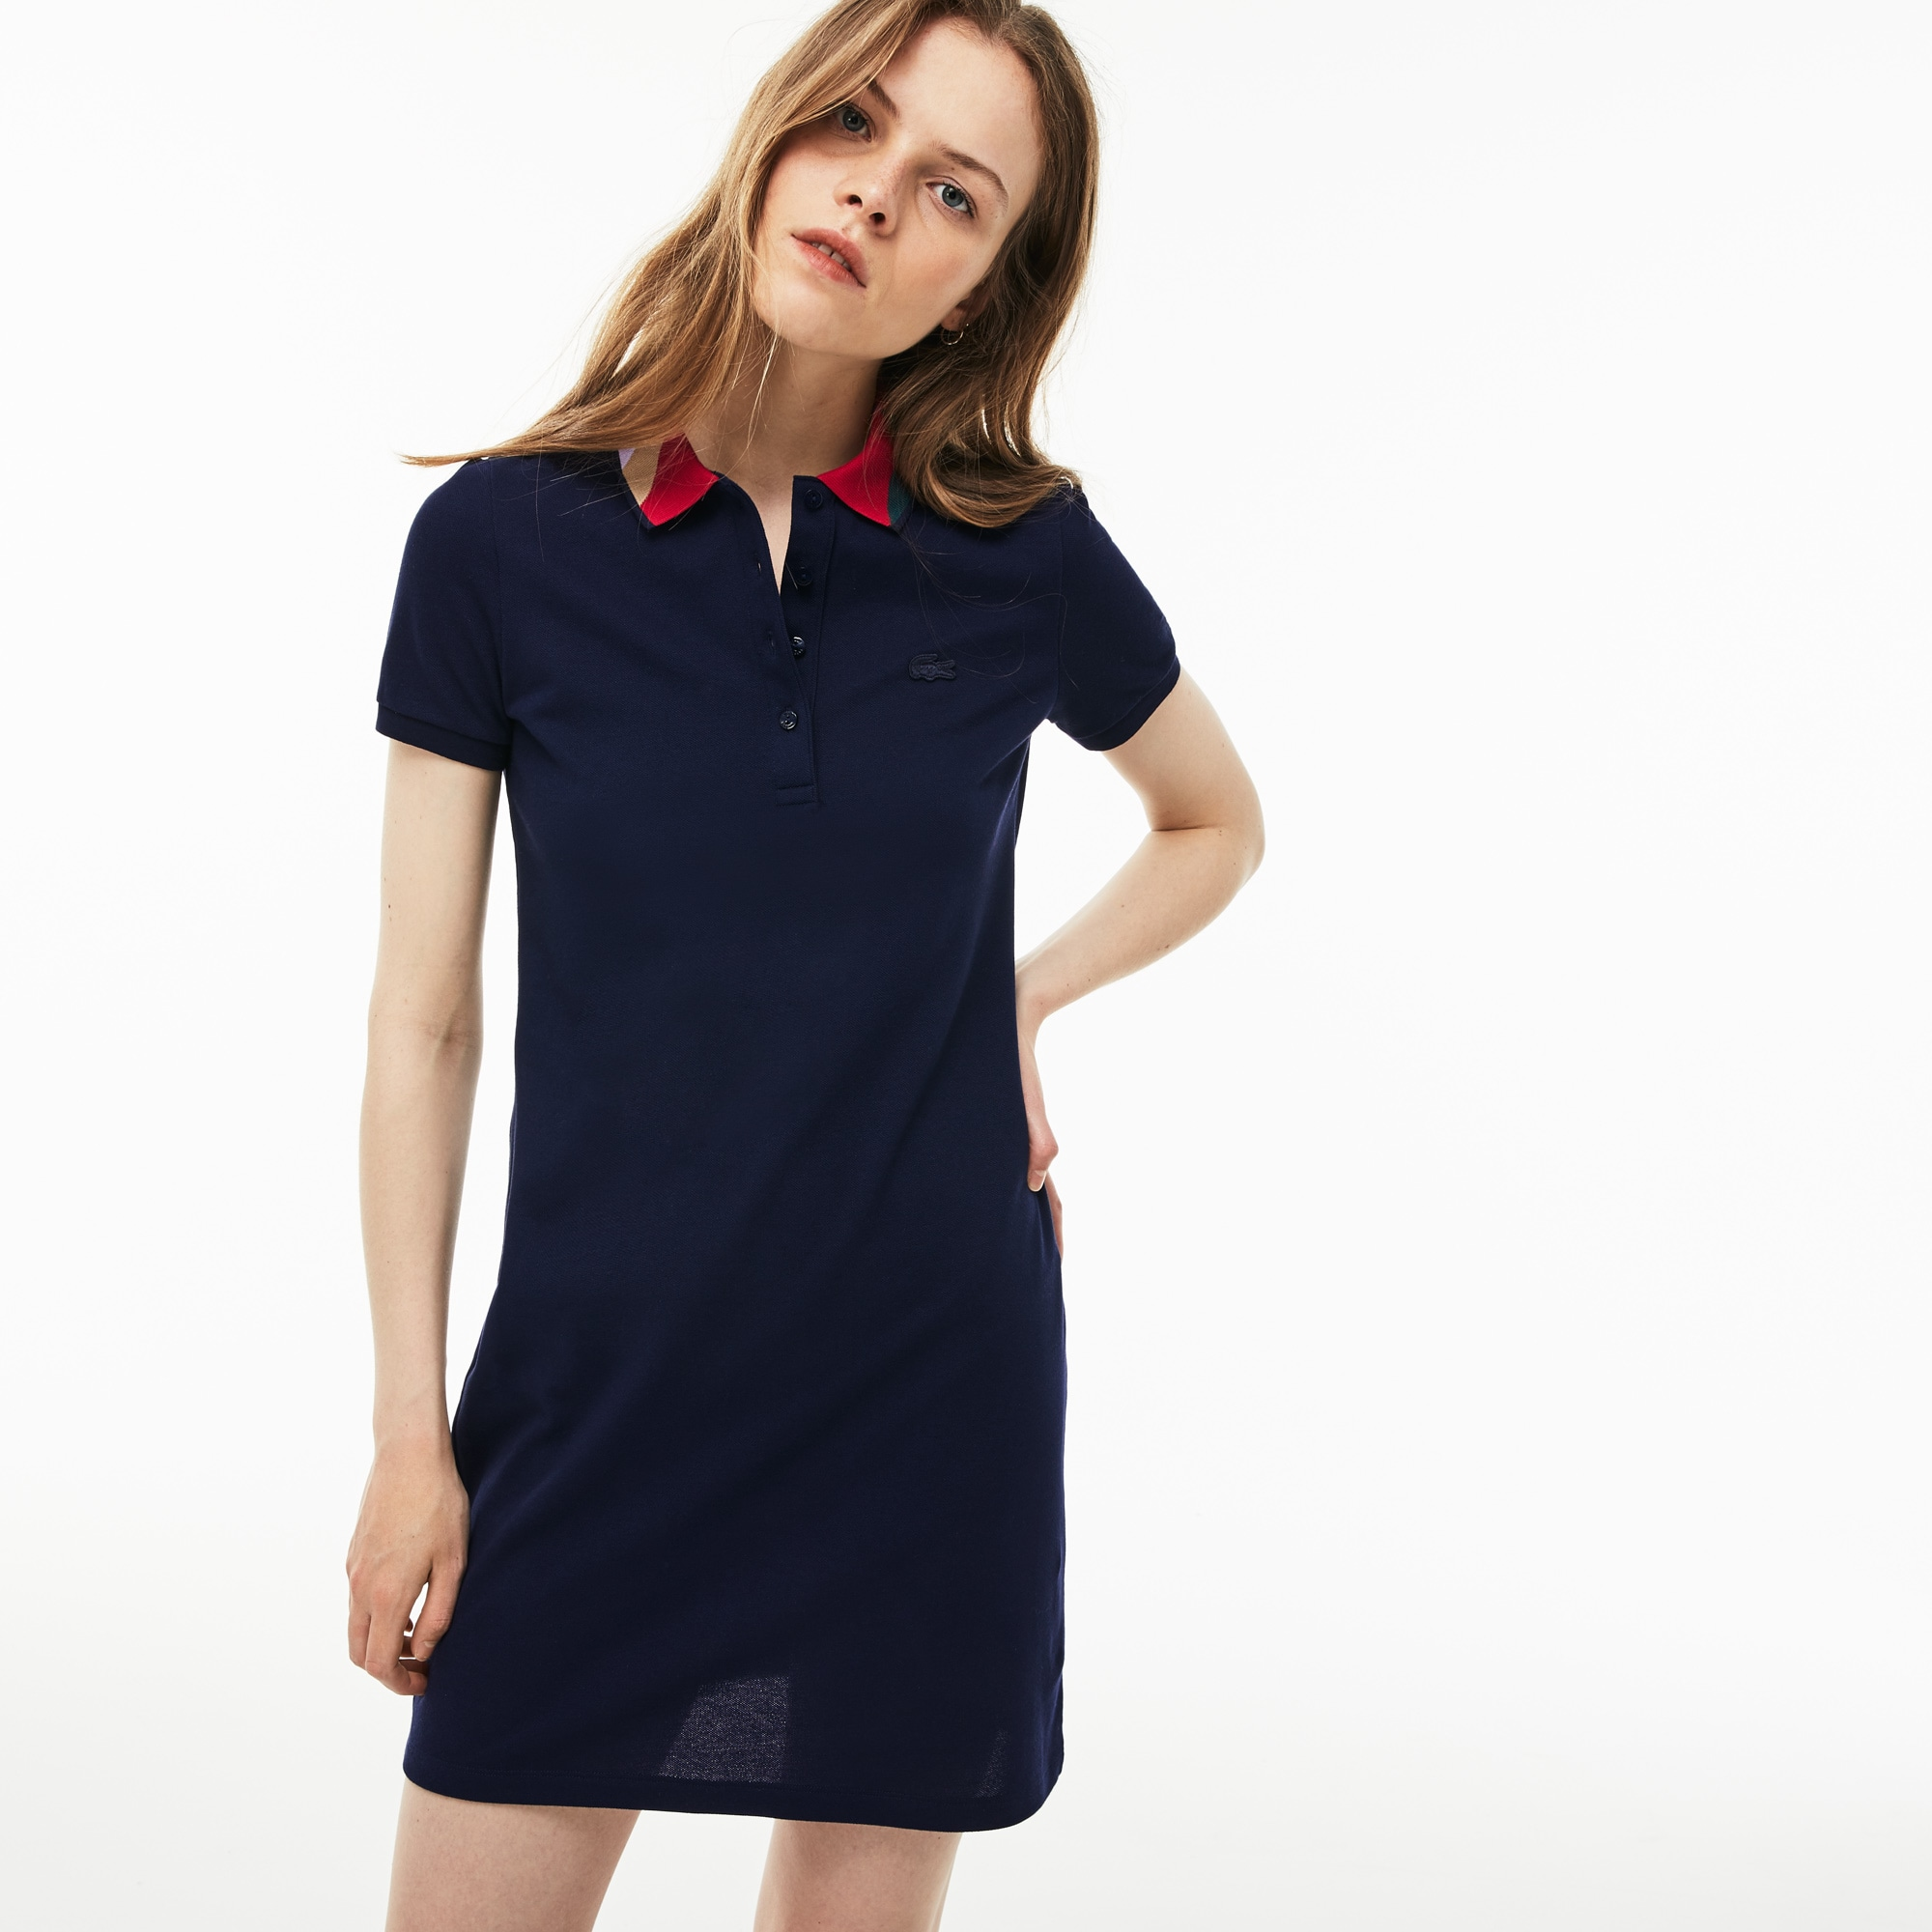 Lacoste - Damen Slim Fit Polokleid aus Mini-Piqué mit Colorblocks - 4